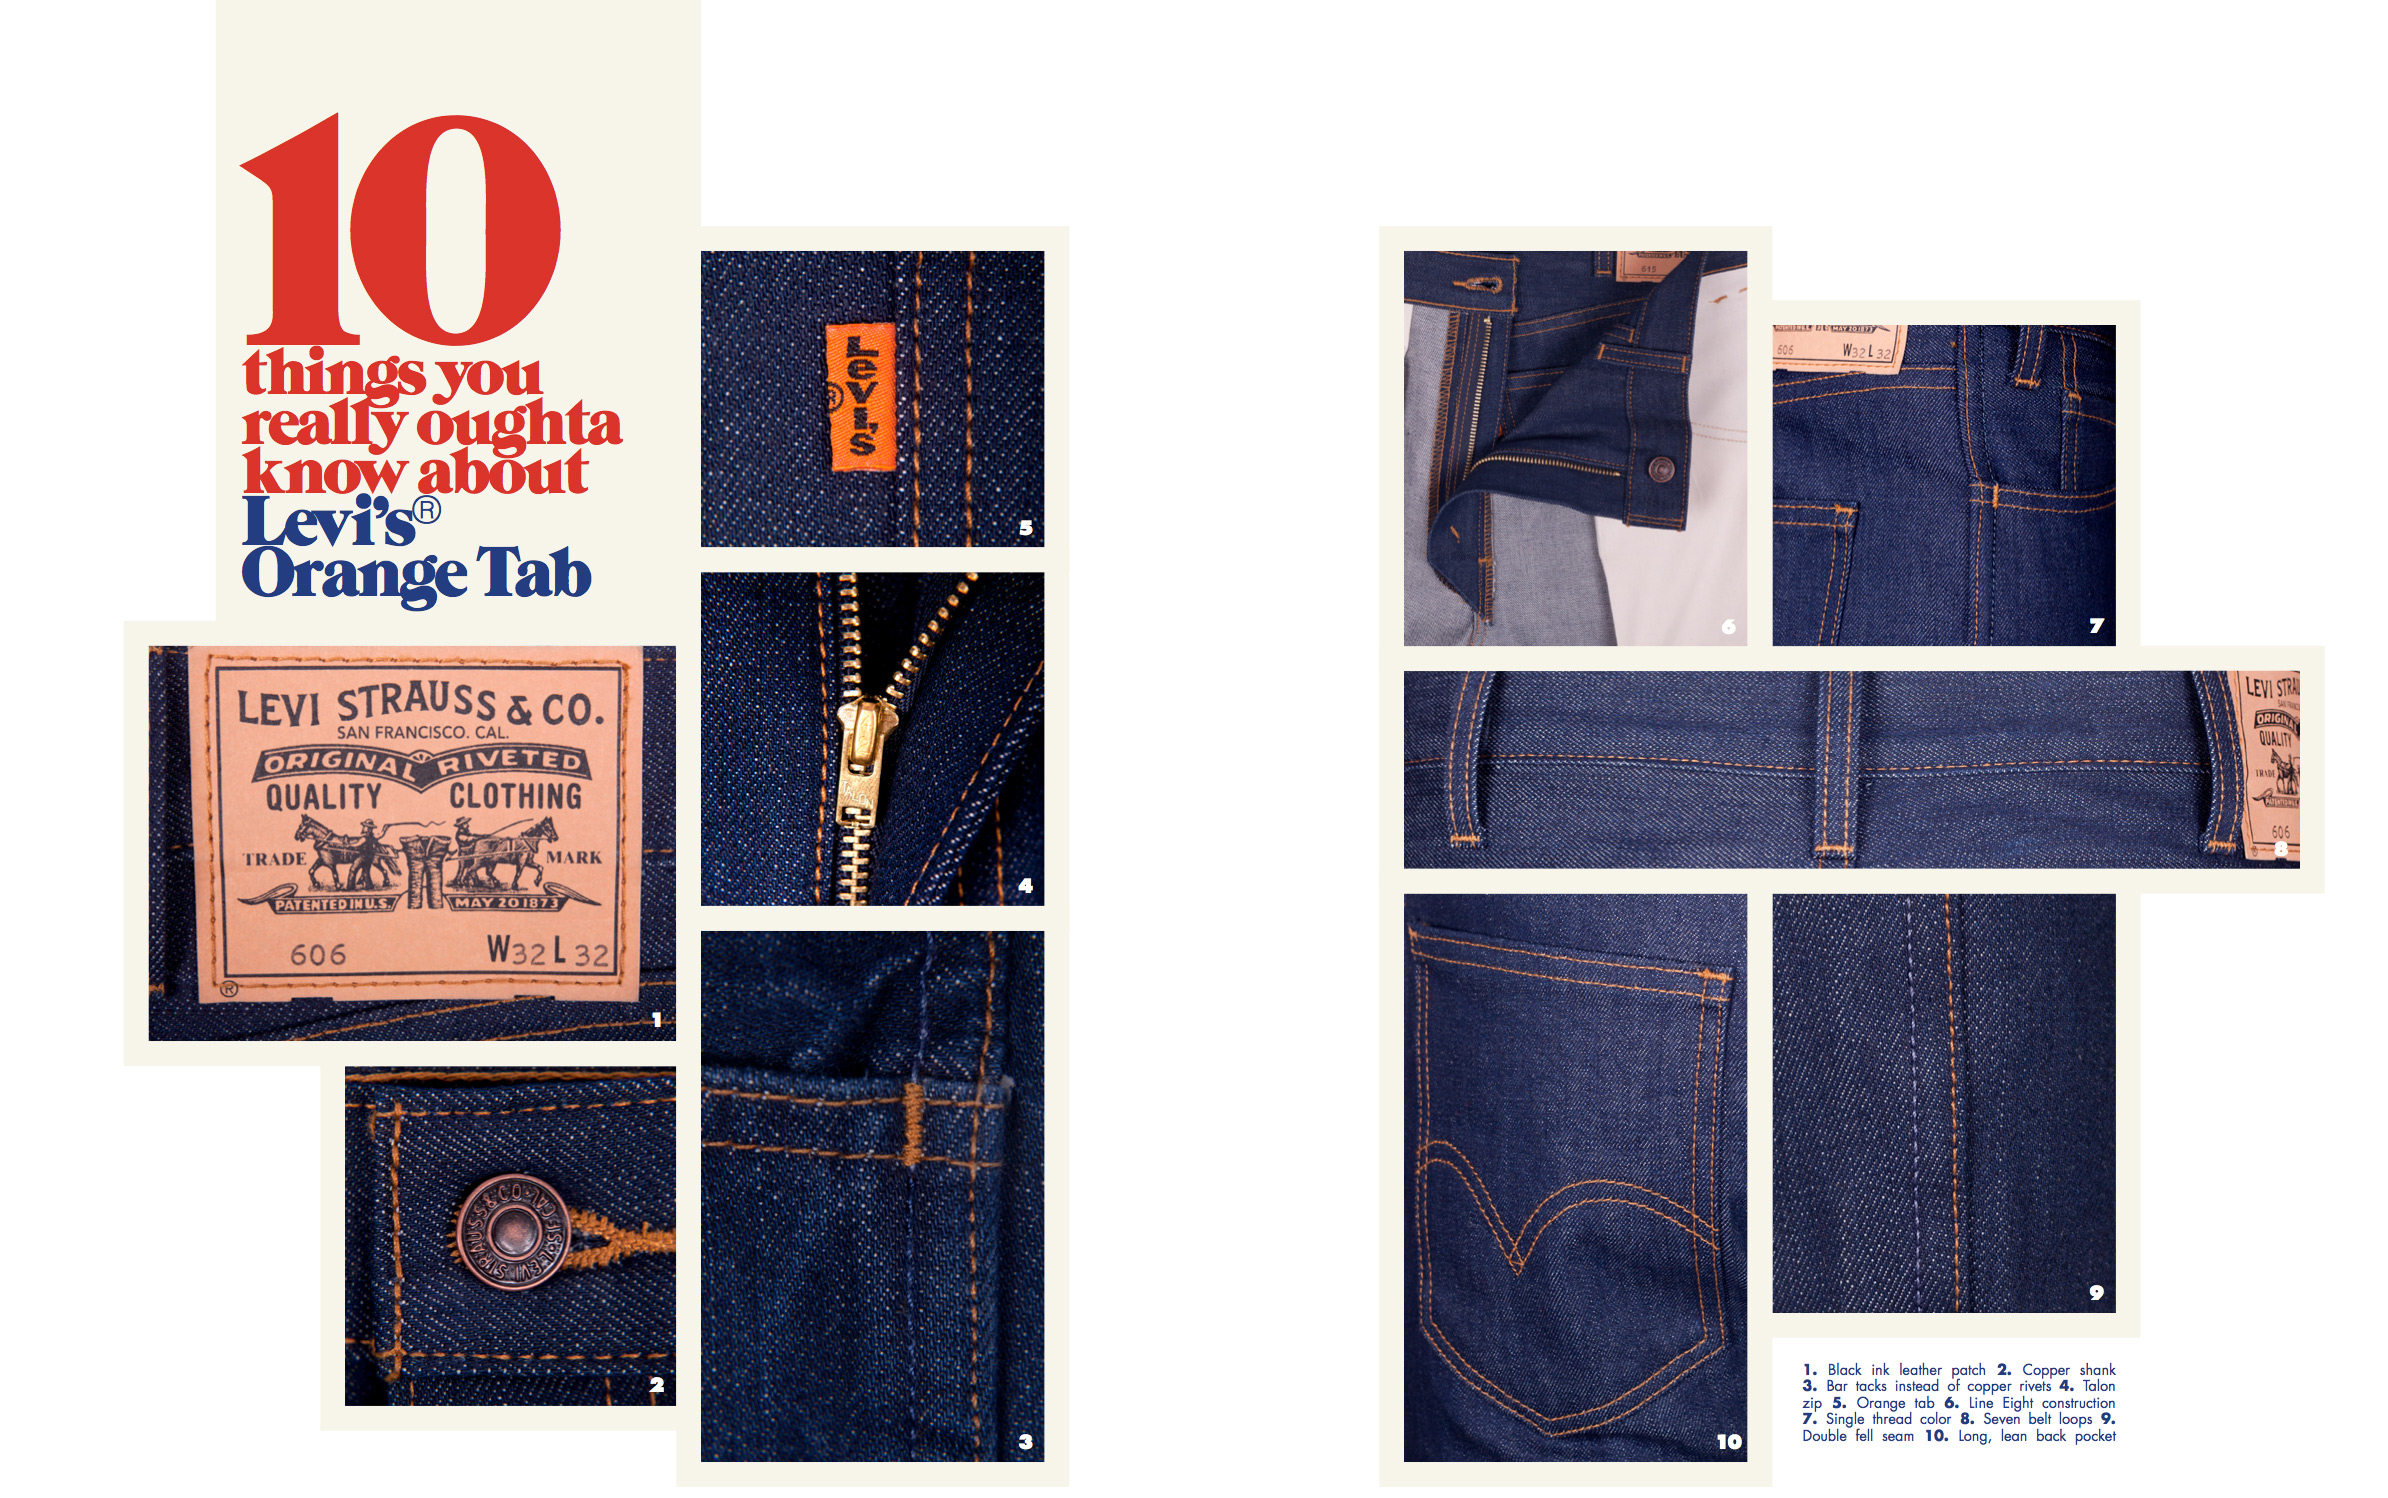 ffa65299e6e Levis Vintage – Orange Tab Relaunch Plus More New Additions from the  Archive Collection